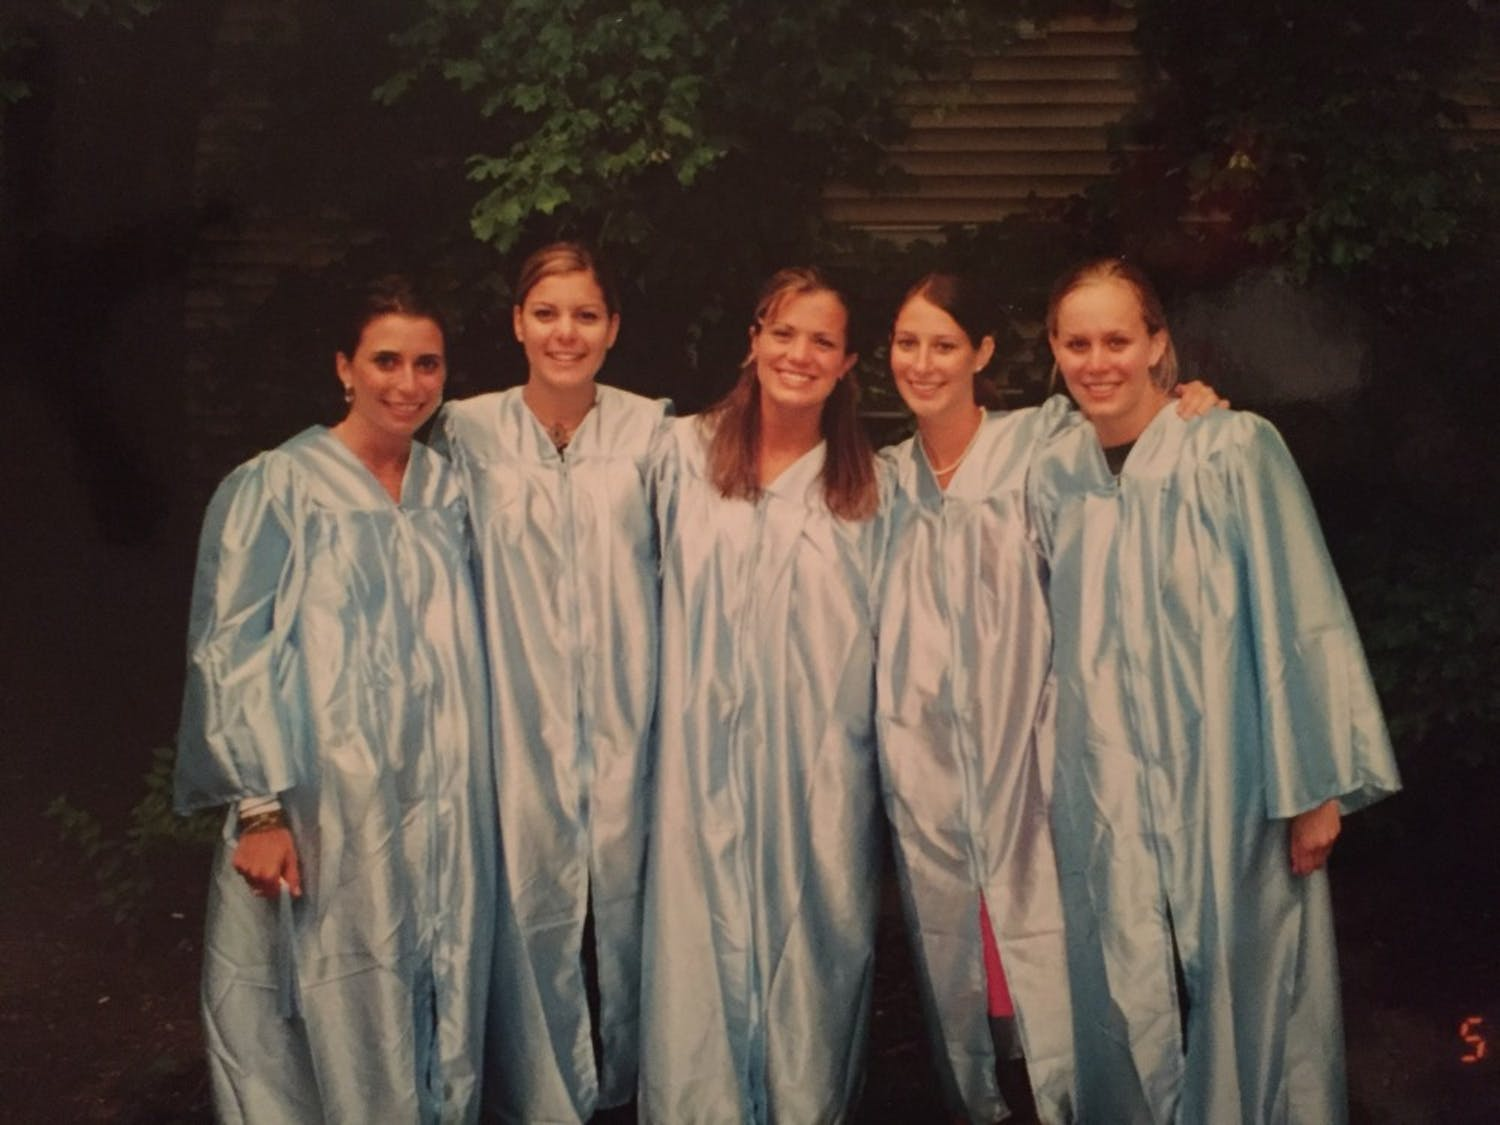 Melissa Egan (middle) graduated from UNC as a Dramatic Art major in 2003. Photo courtesy of Melissa Egan.